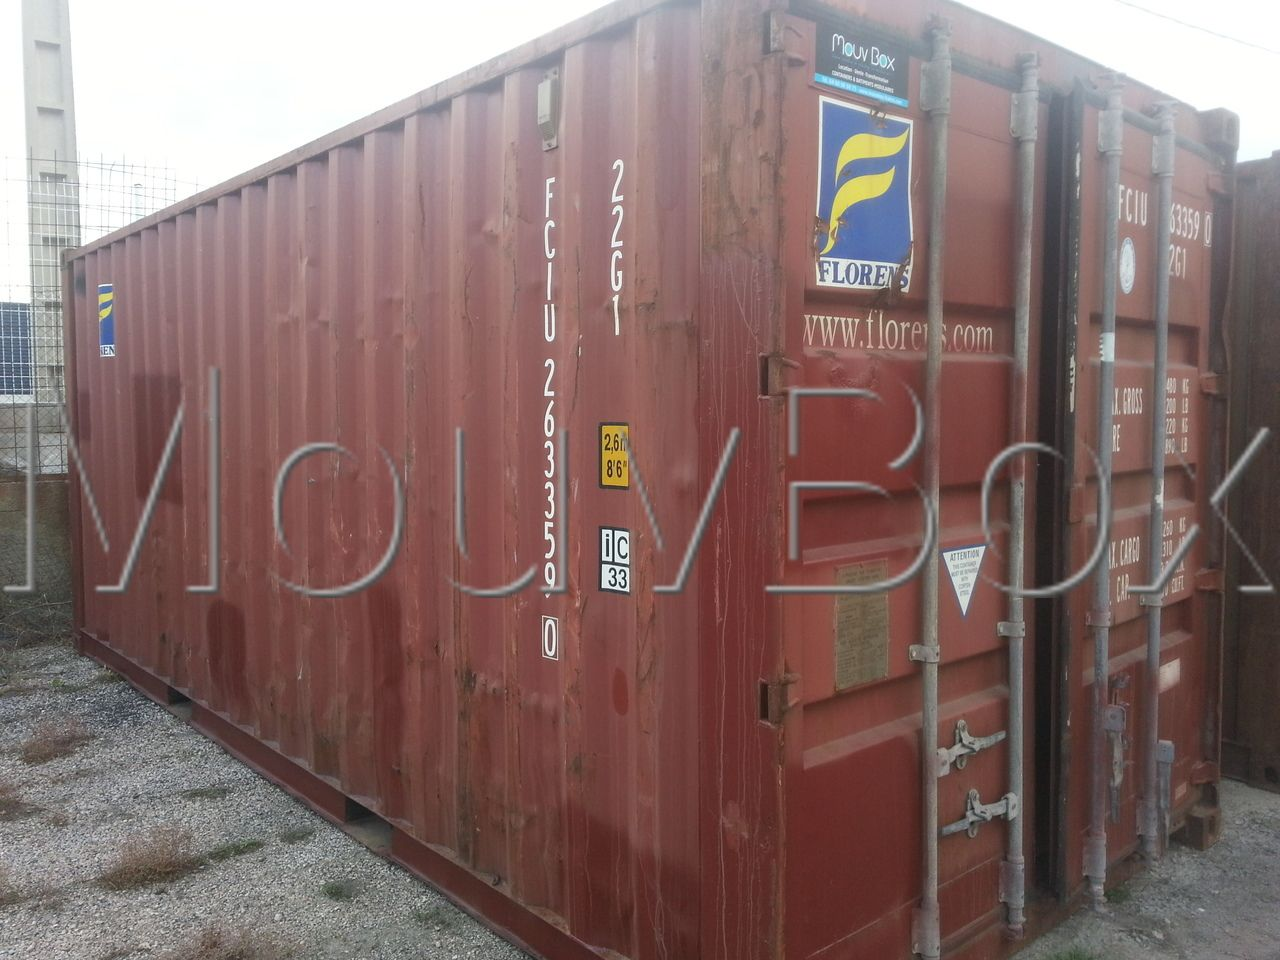 mouvbox france container 20 dry occasion classe b. Black Bedroom Furniture Sets. Home Design Ideas